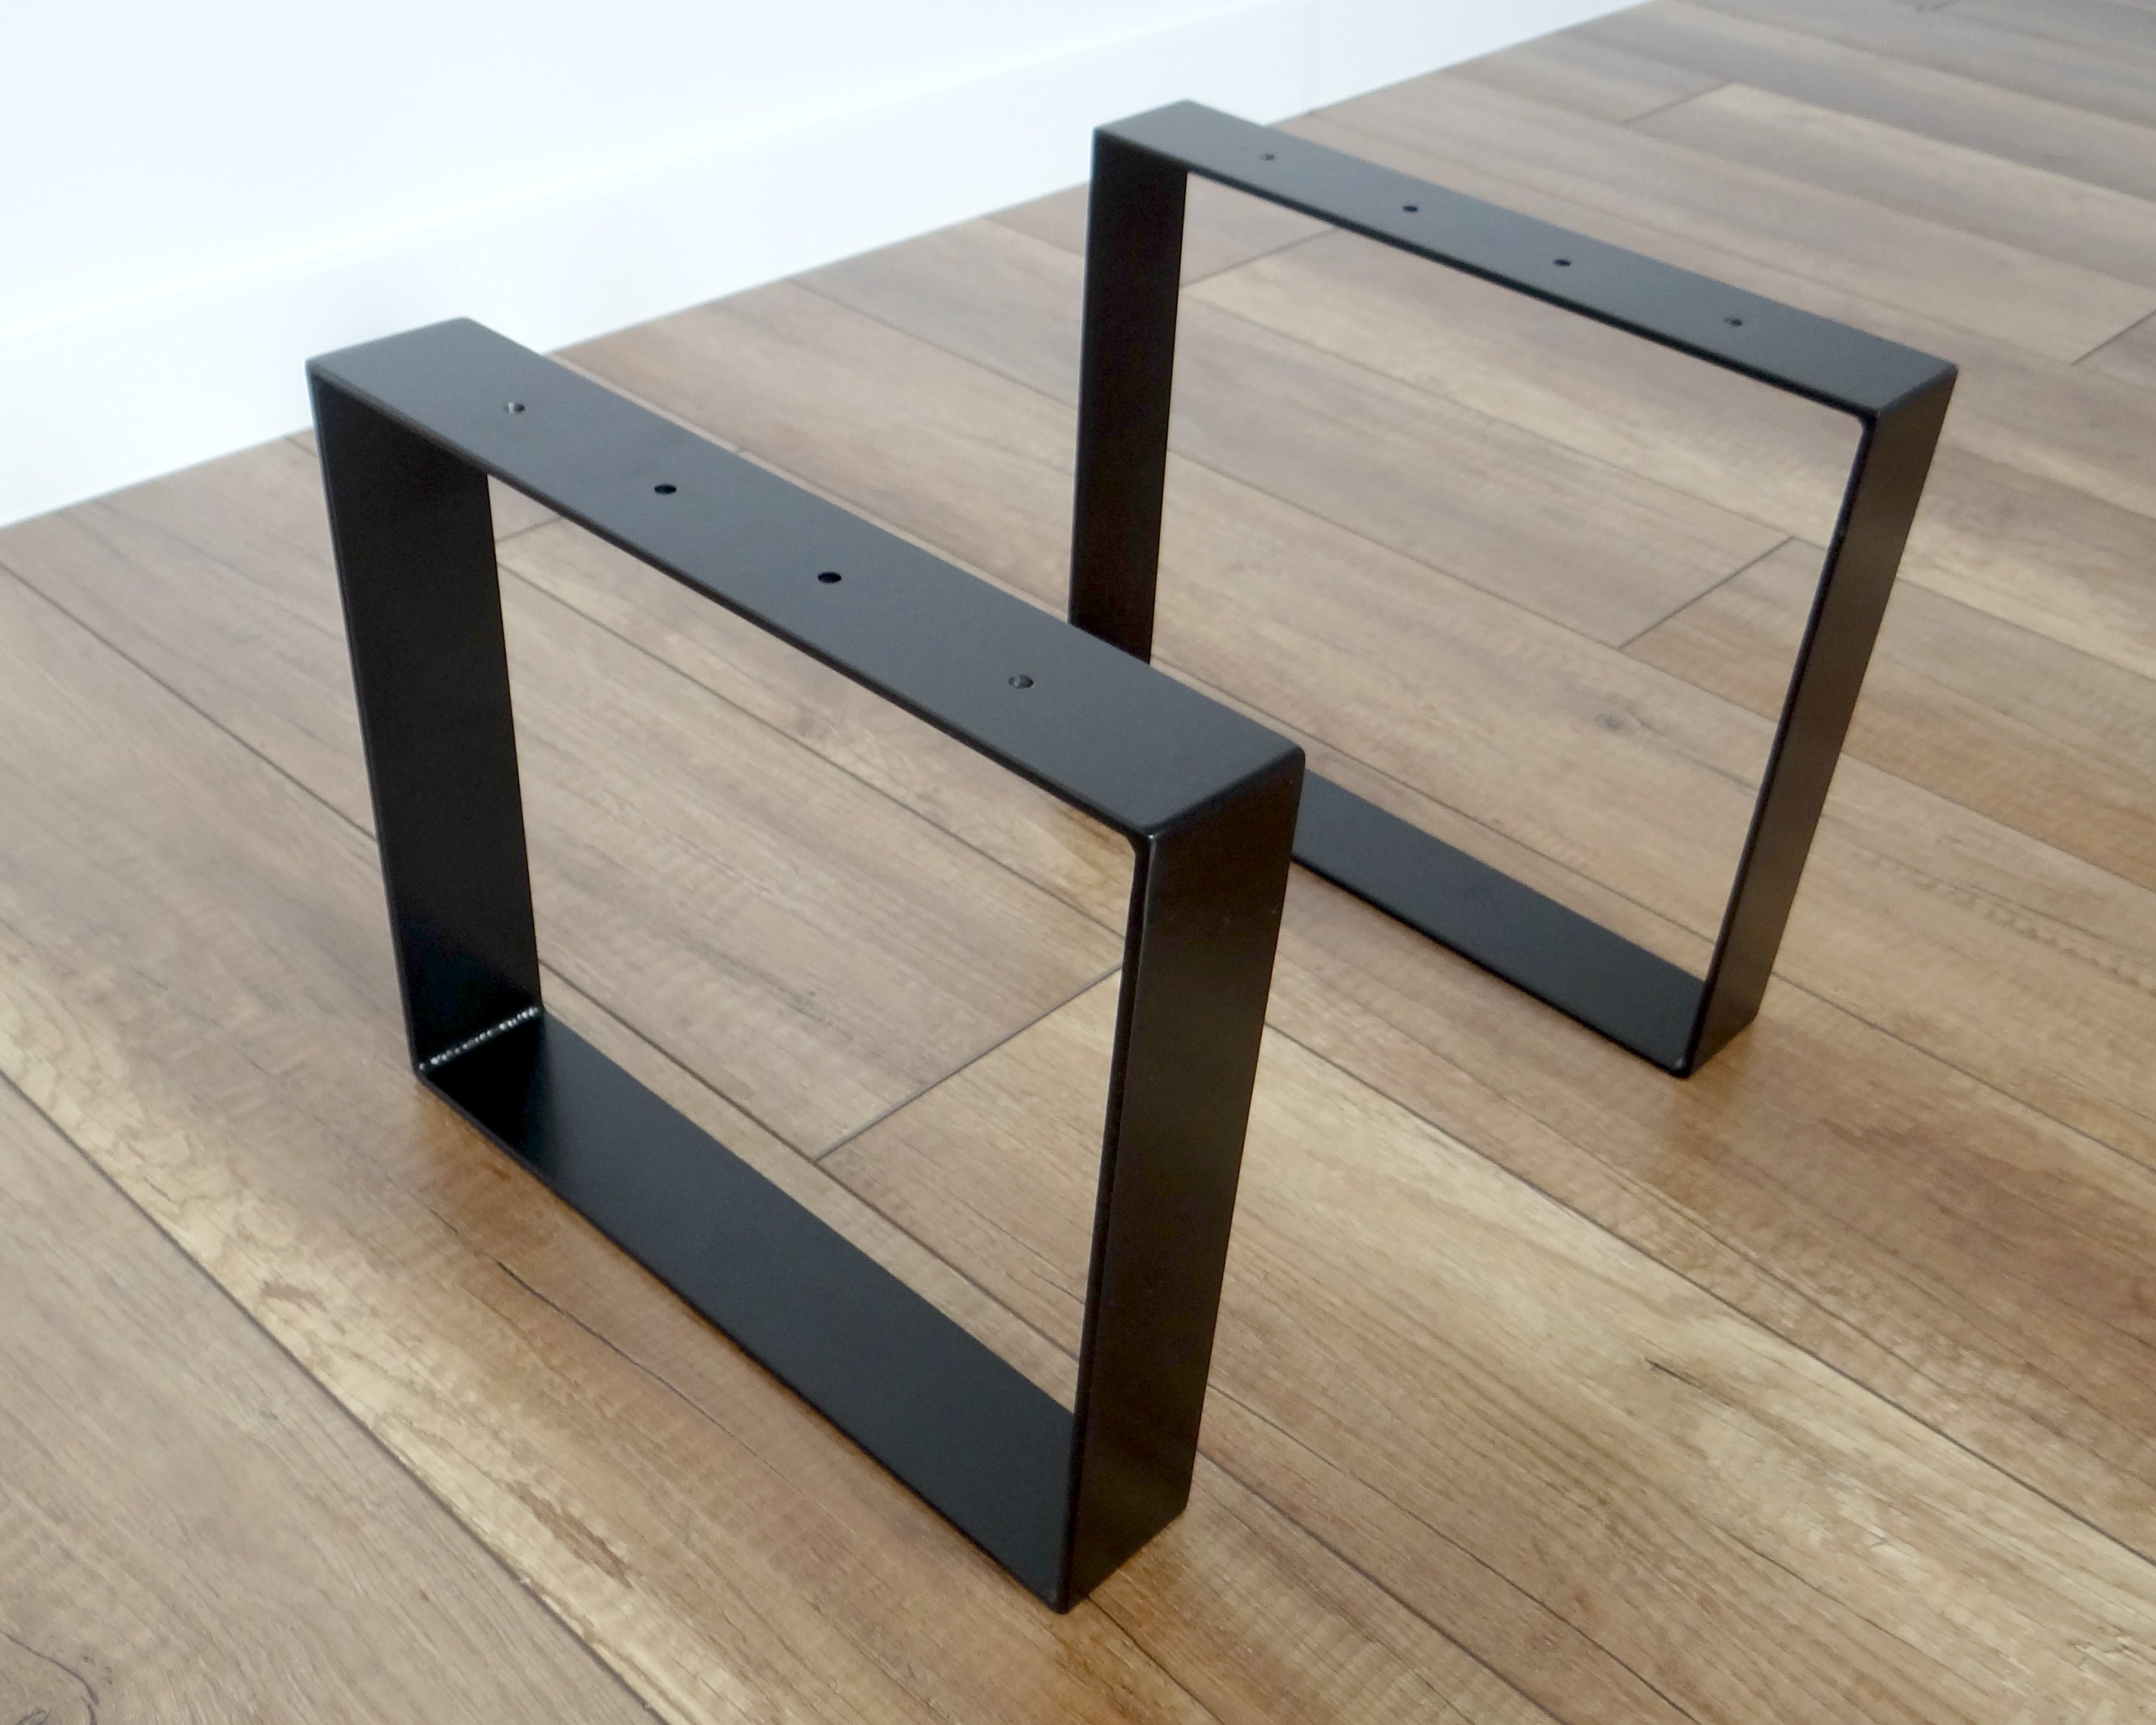 Metal Coffee Table Legs Steel Bench Legs Set Of 2 Simple Etsy